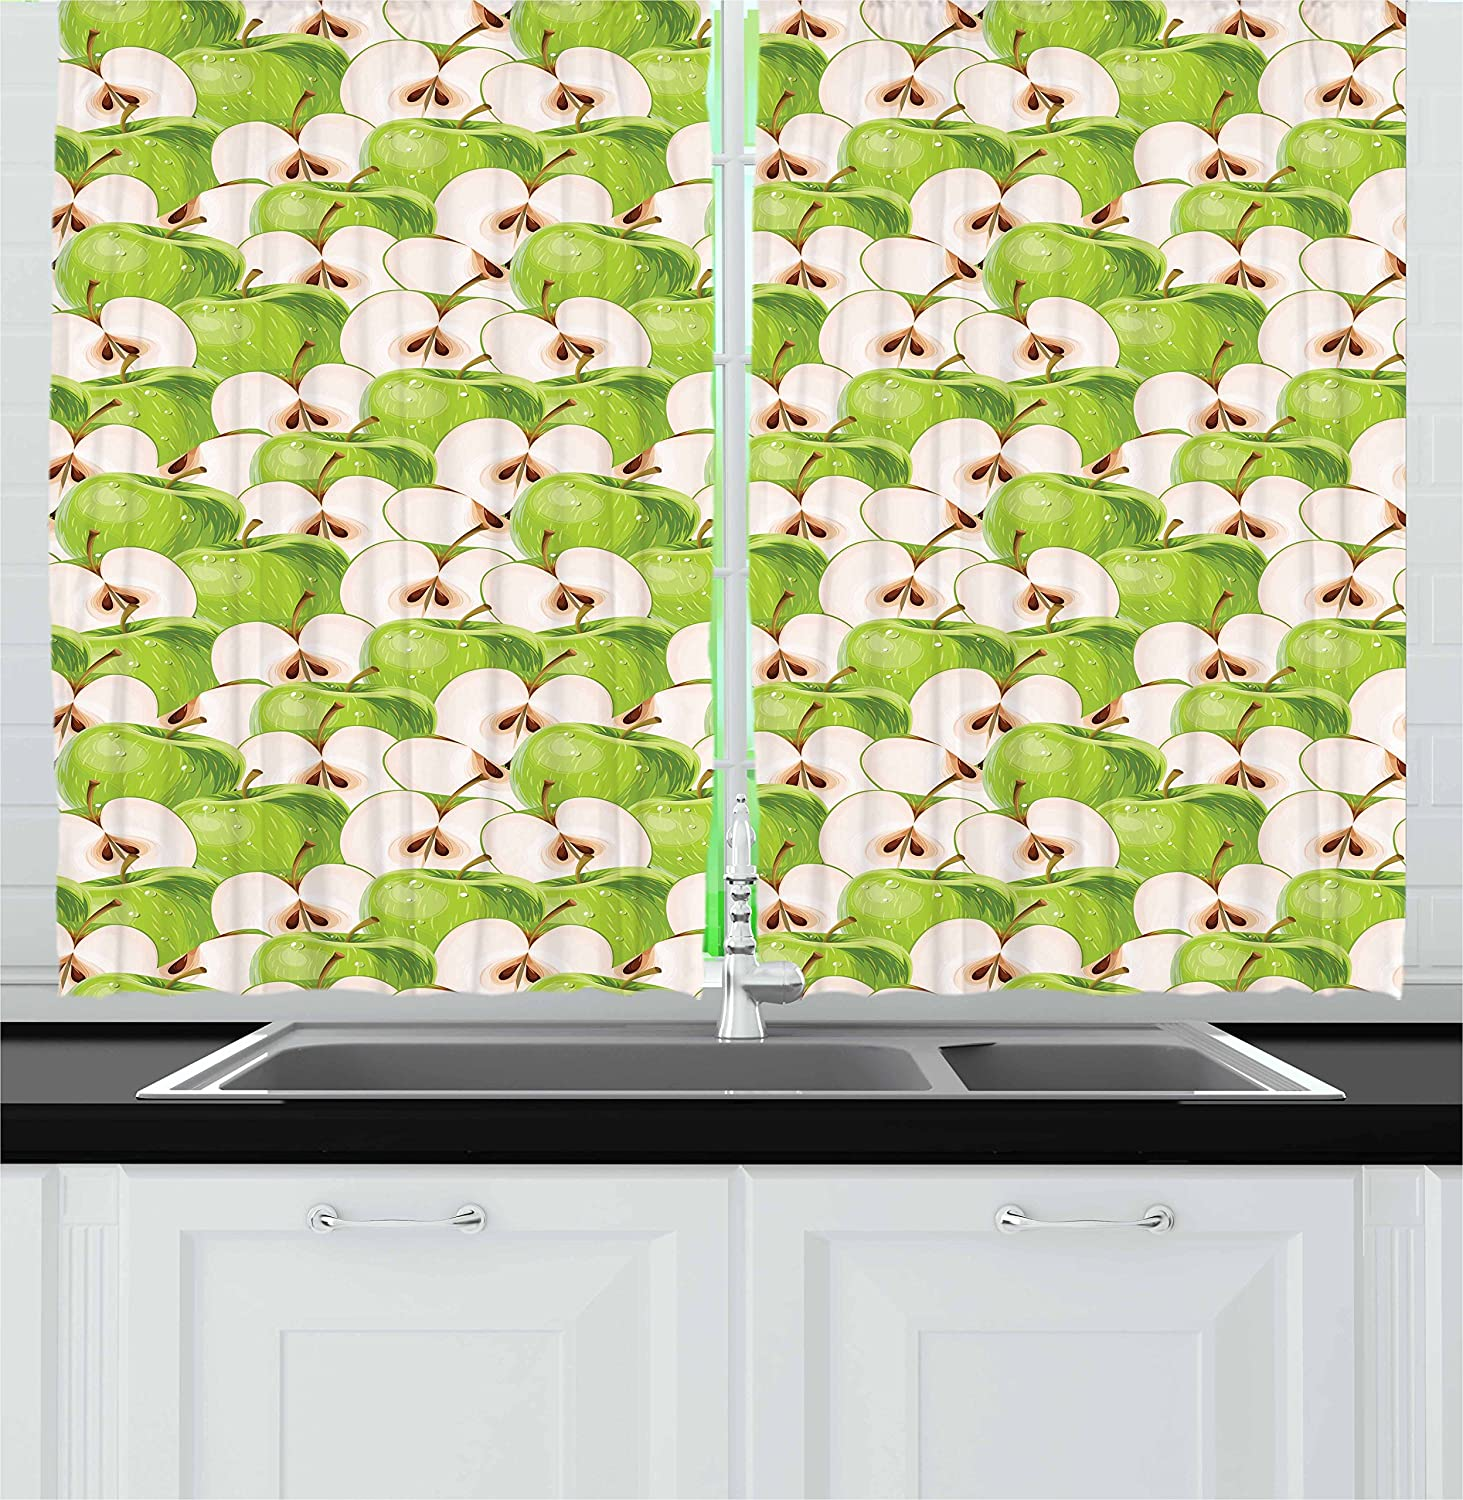 Lunarable Apple Kitchen Curtains, Fresh Green Apples and Slices with Water Drops Vivid Illustration, Window Drapes 2 Panel Set for Kitchen Cafe Decor, 55